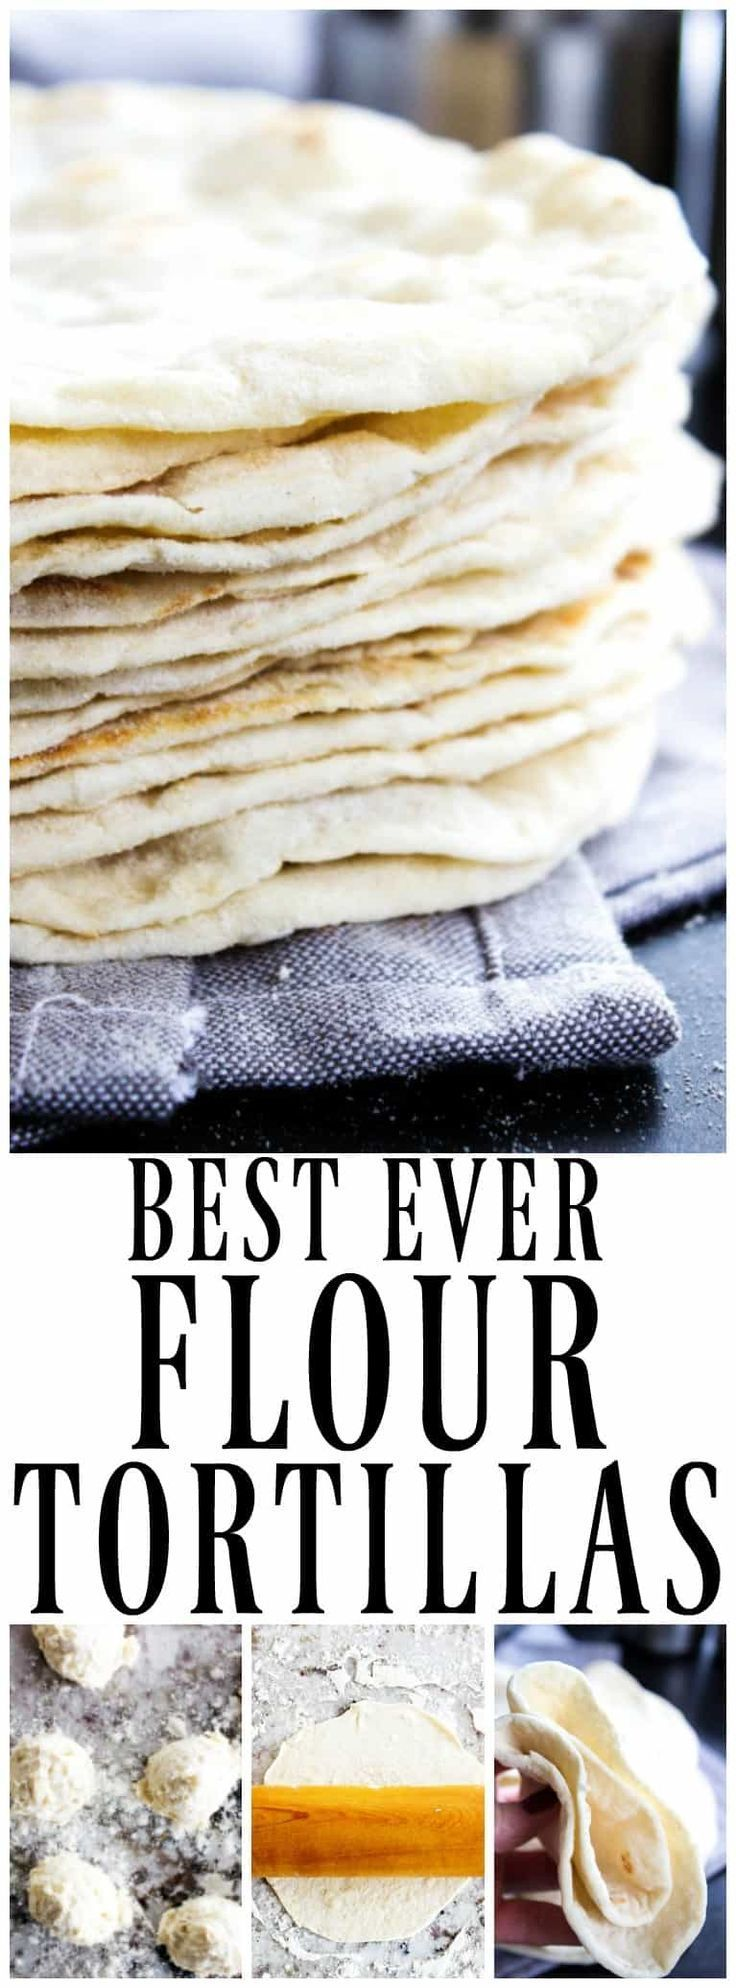 Best Ever Flour Tortillas are so easy & delicious that once you make these you'll never go back to store bought tortillas again.